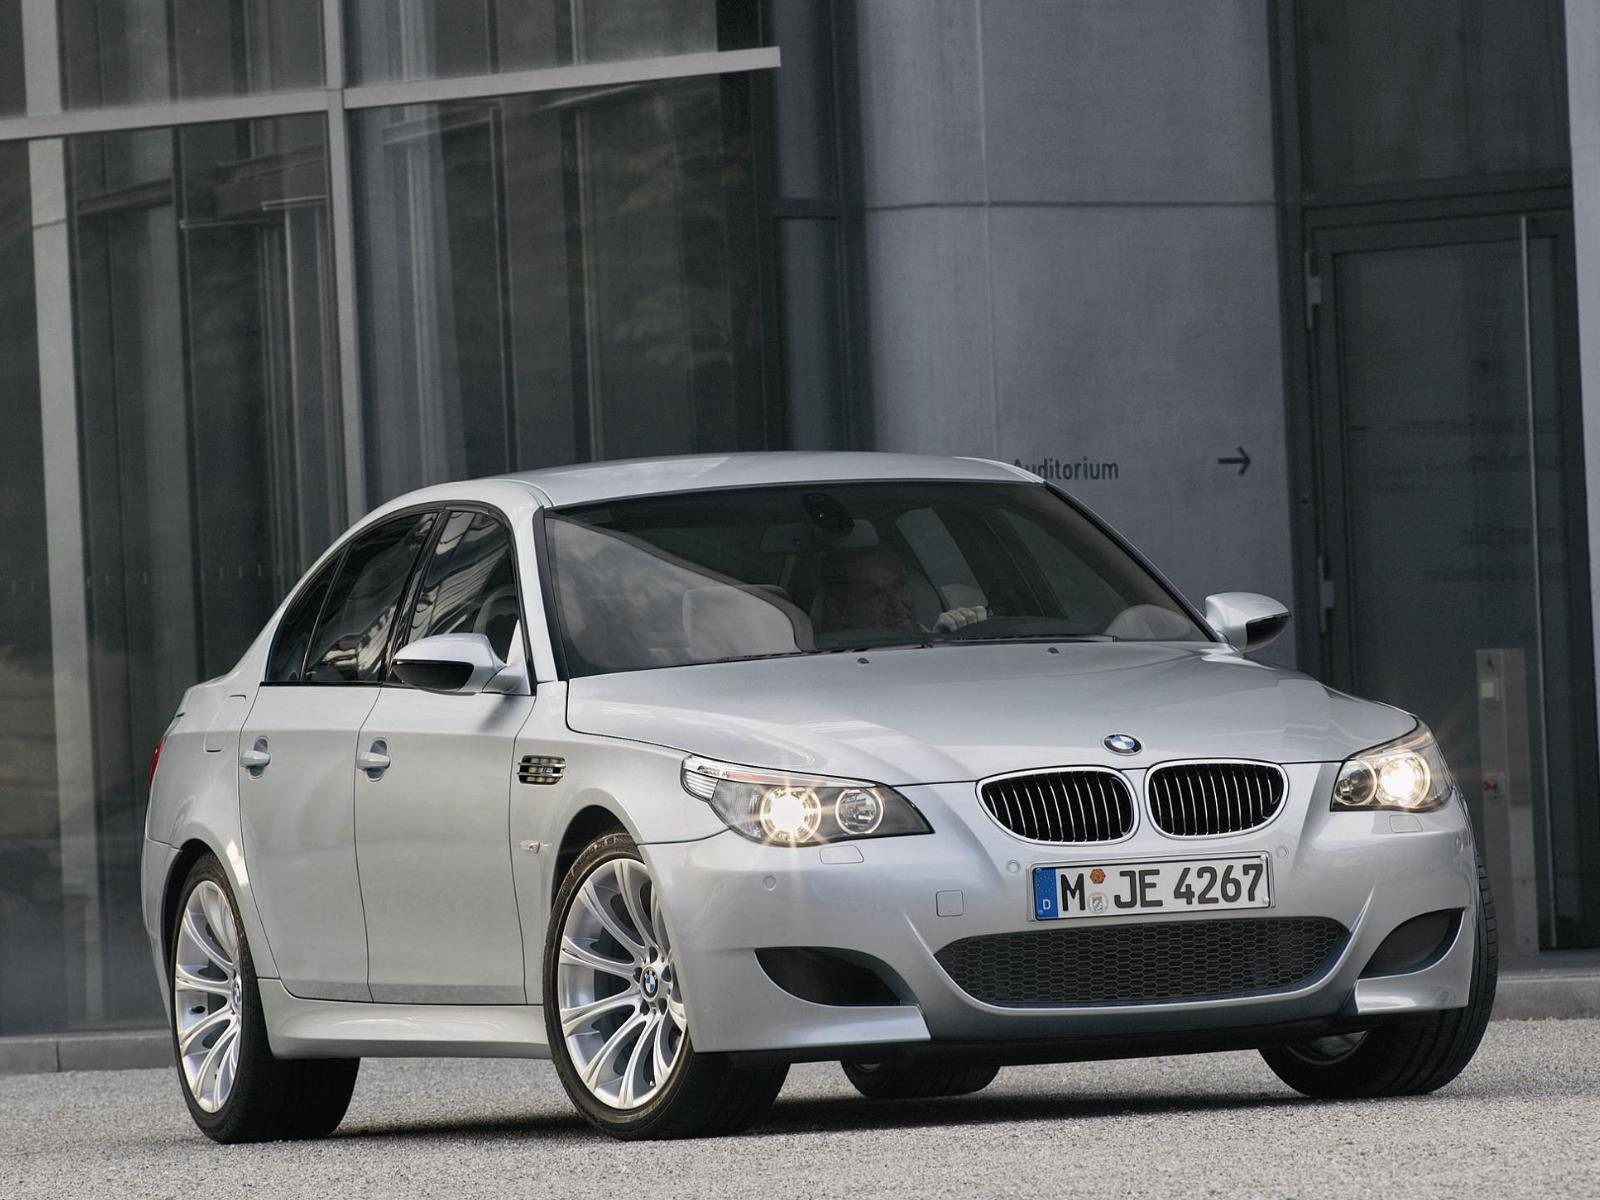 SMG Gearbox can almost ruin the E60 BMW M5 experience